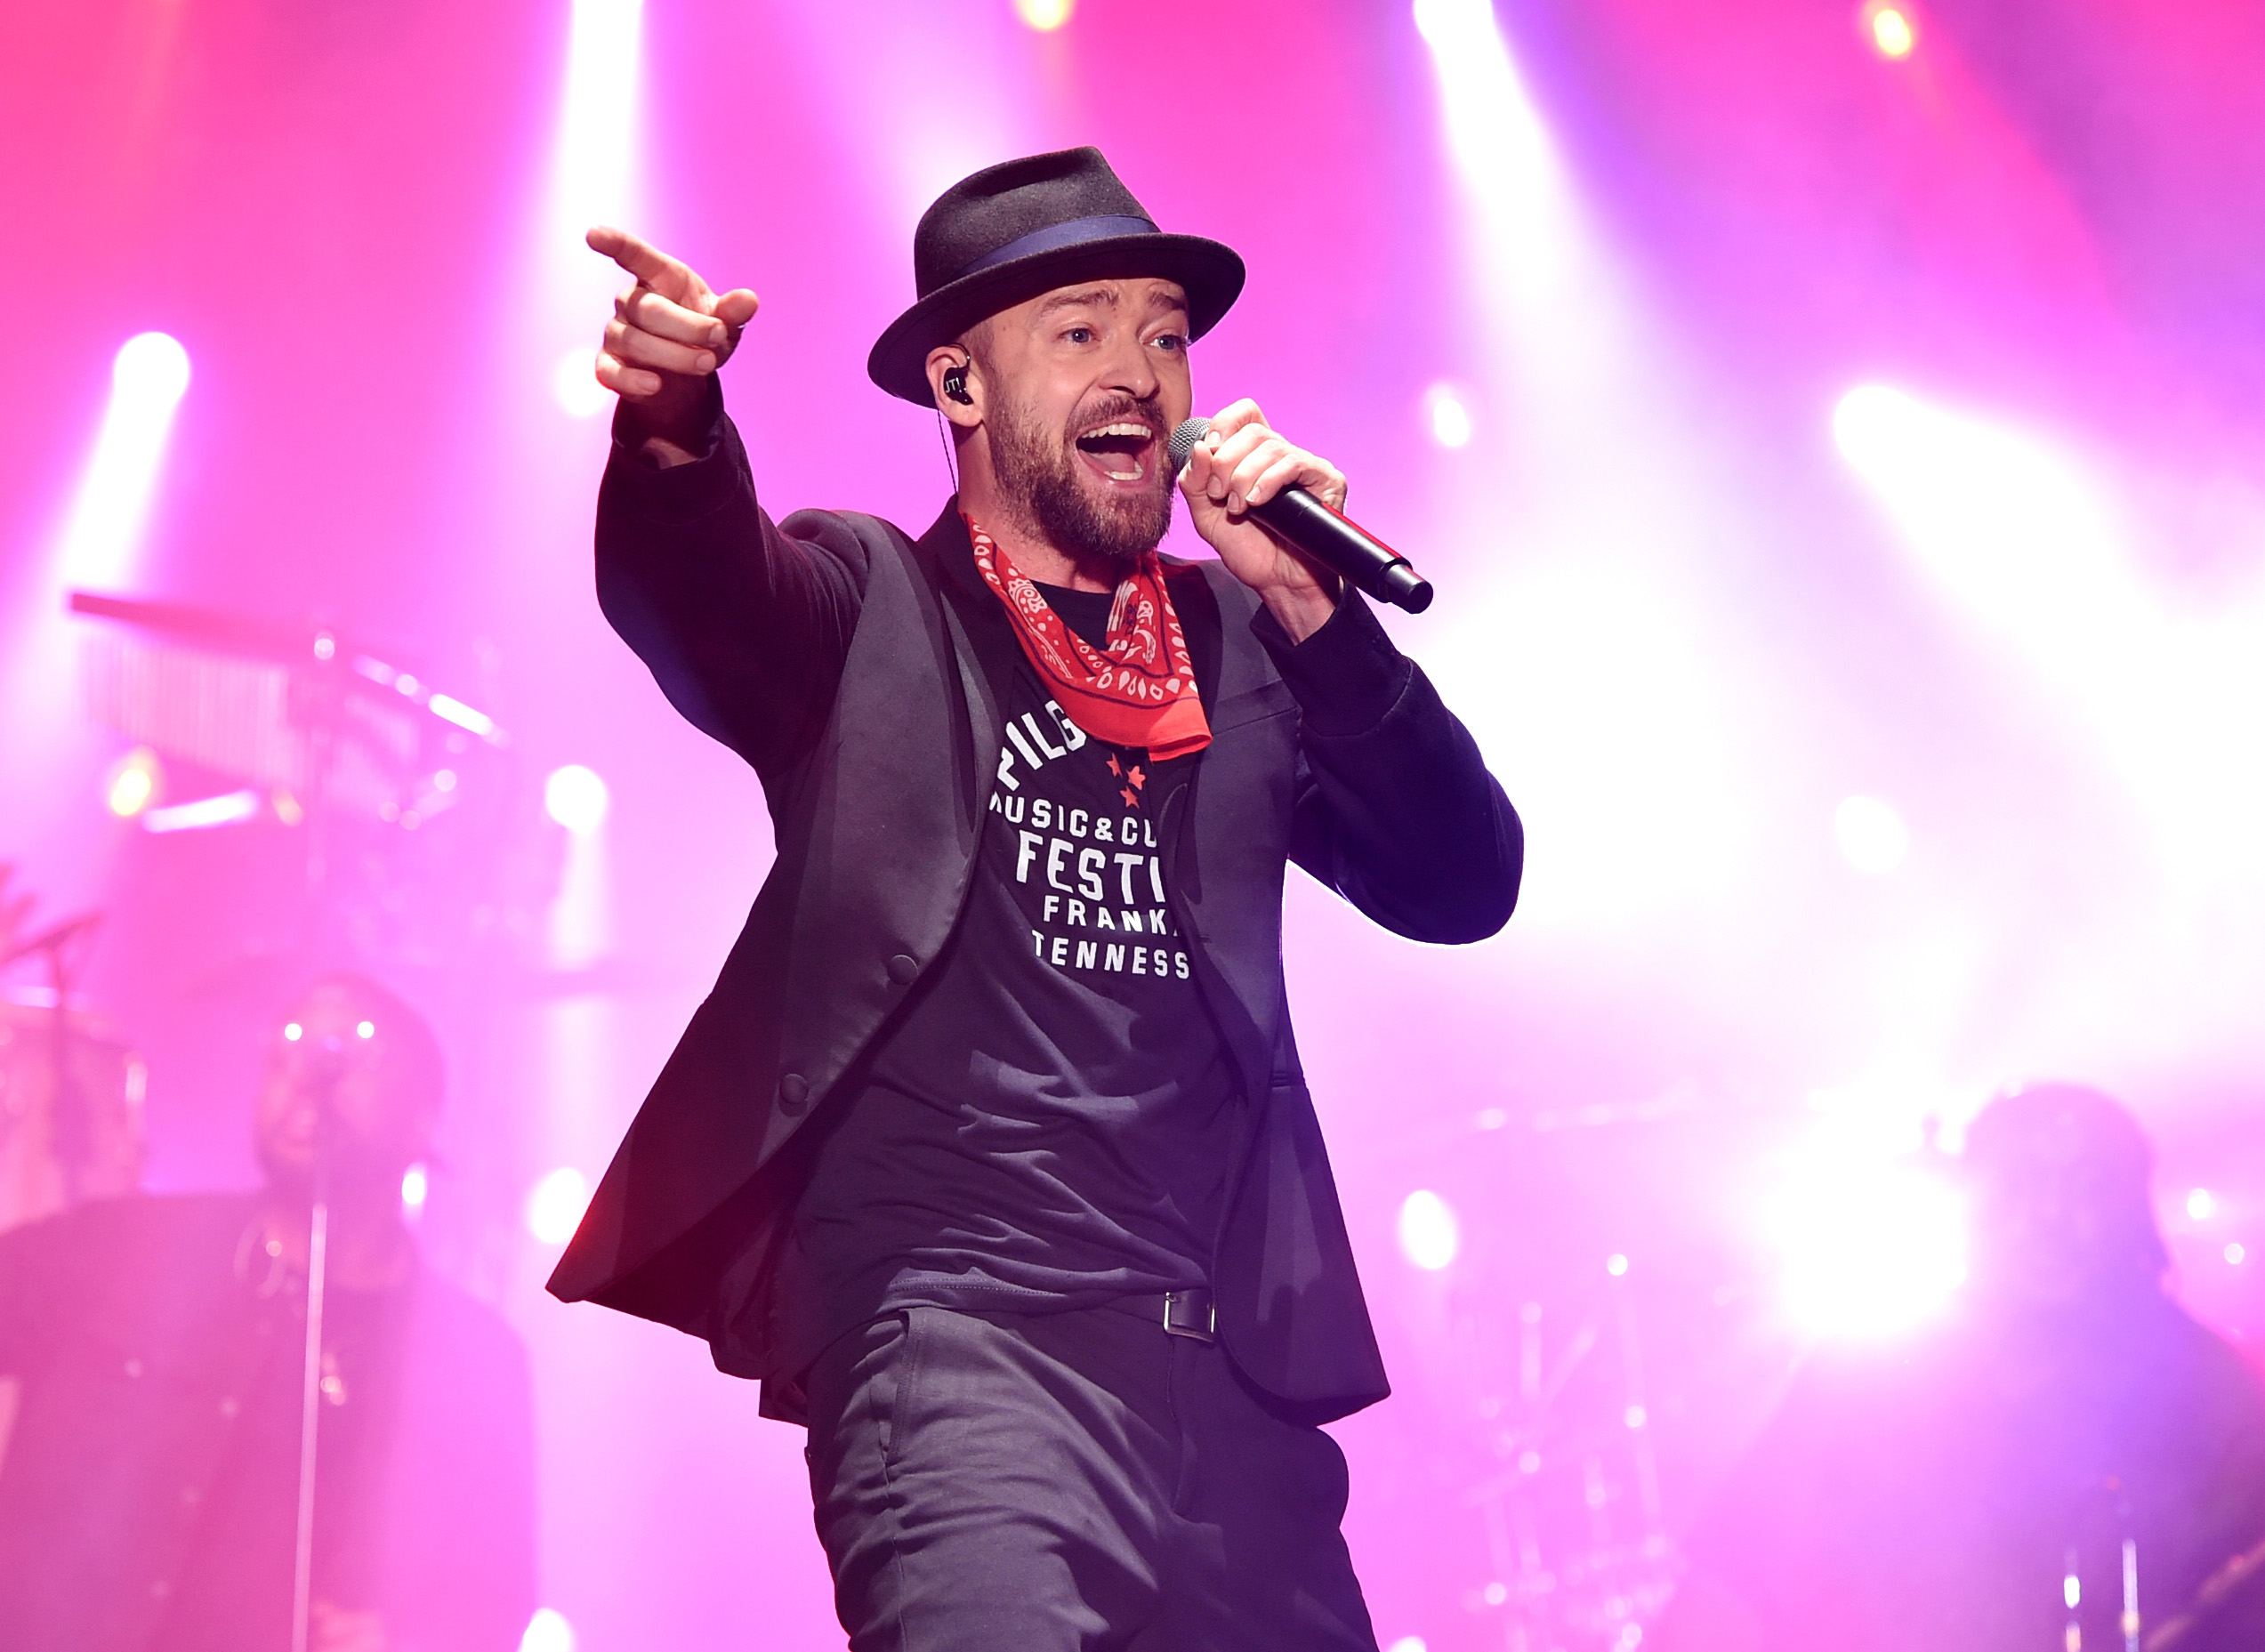 Justin-Timberlake-Performs-For-His-Home-State-Of-Tennessee